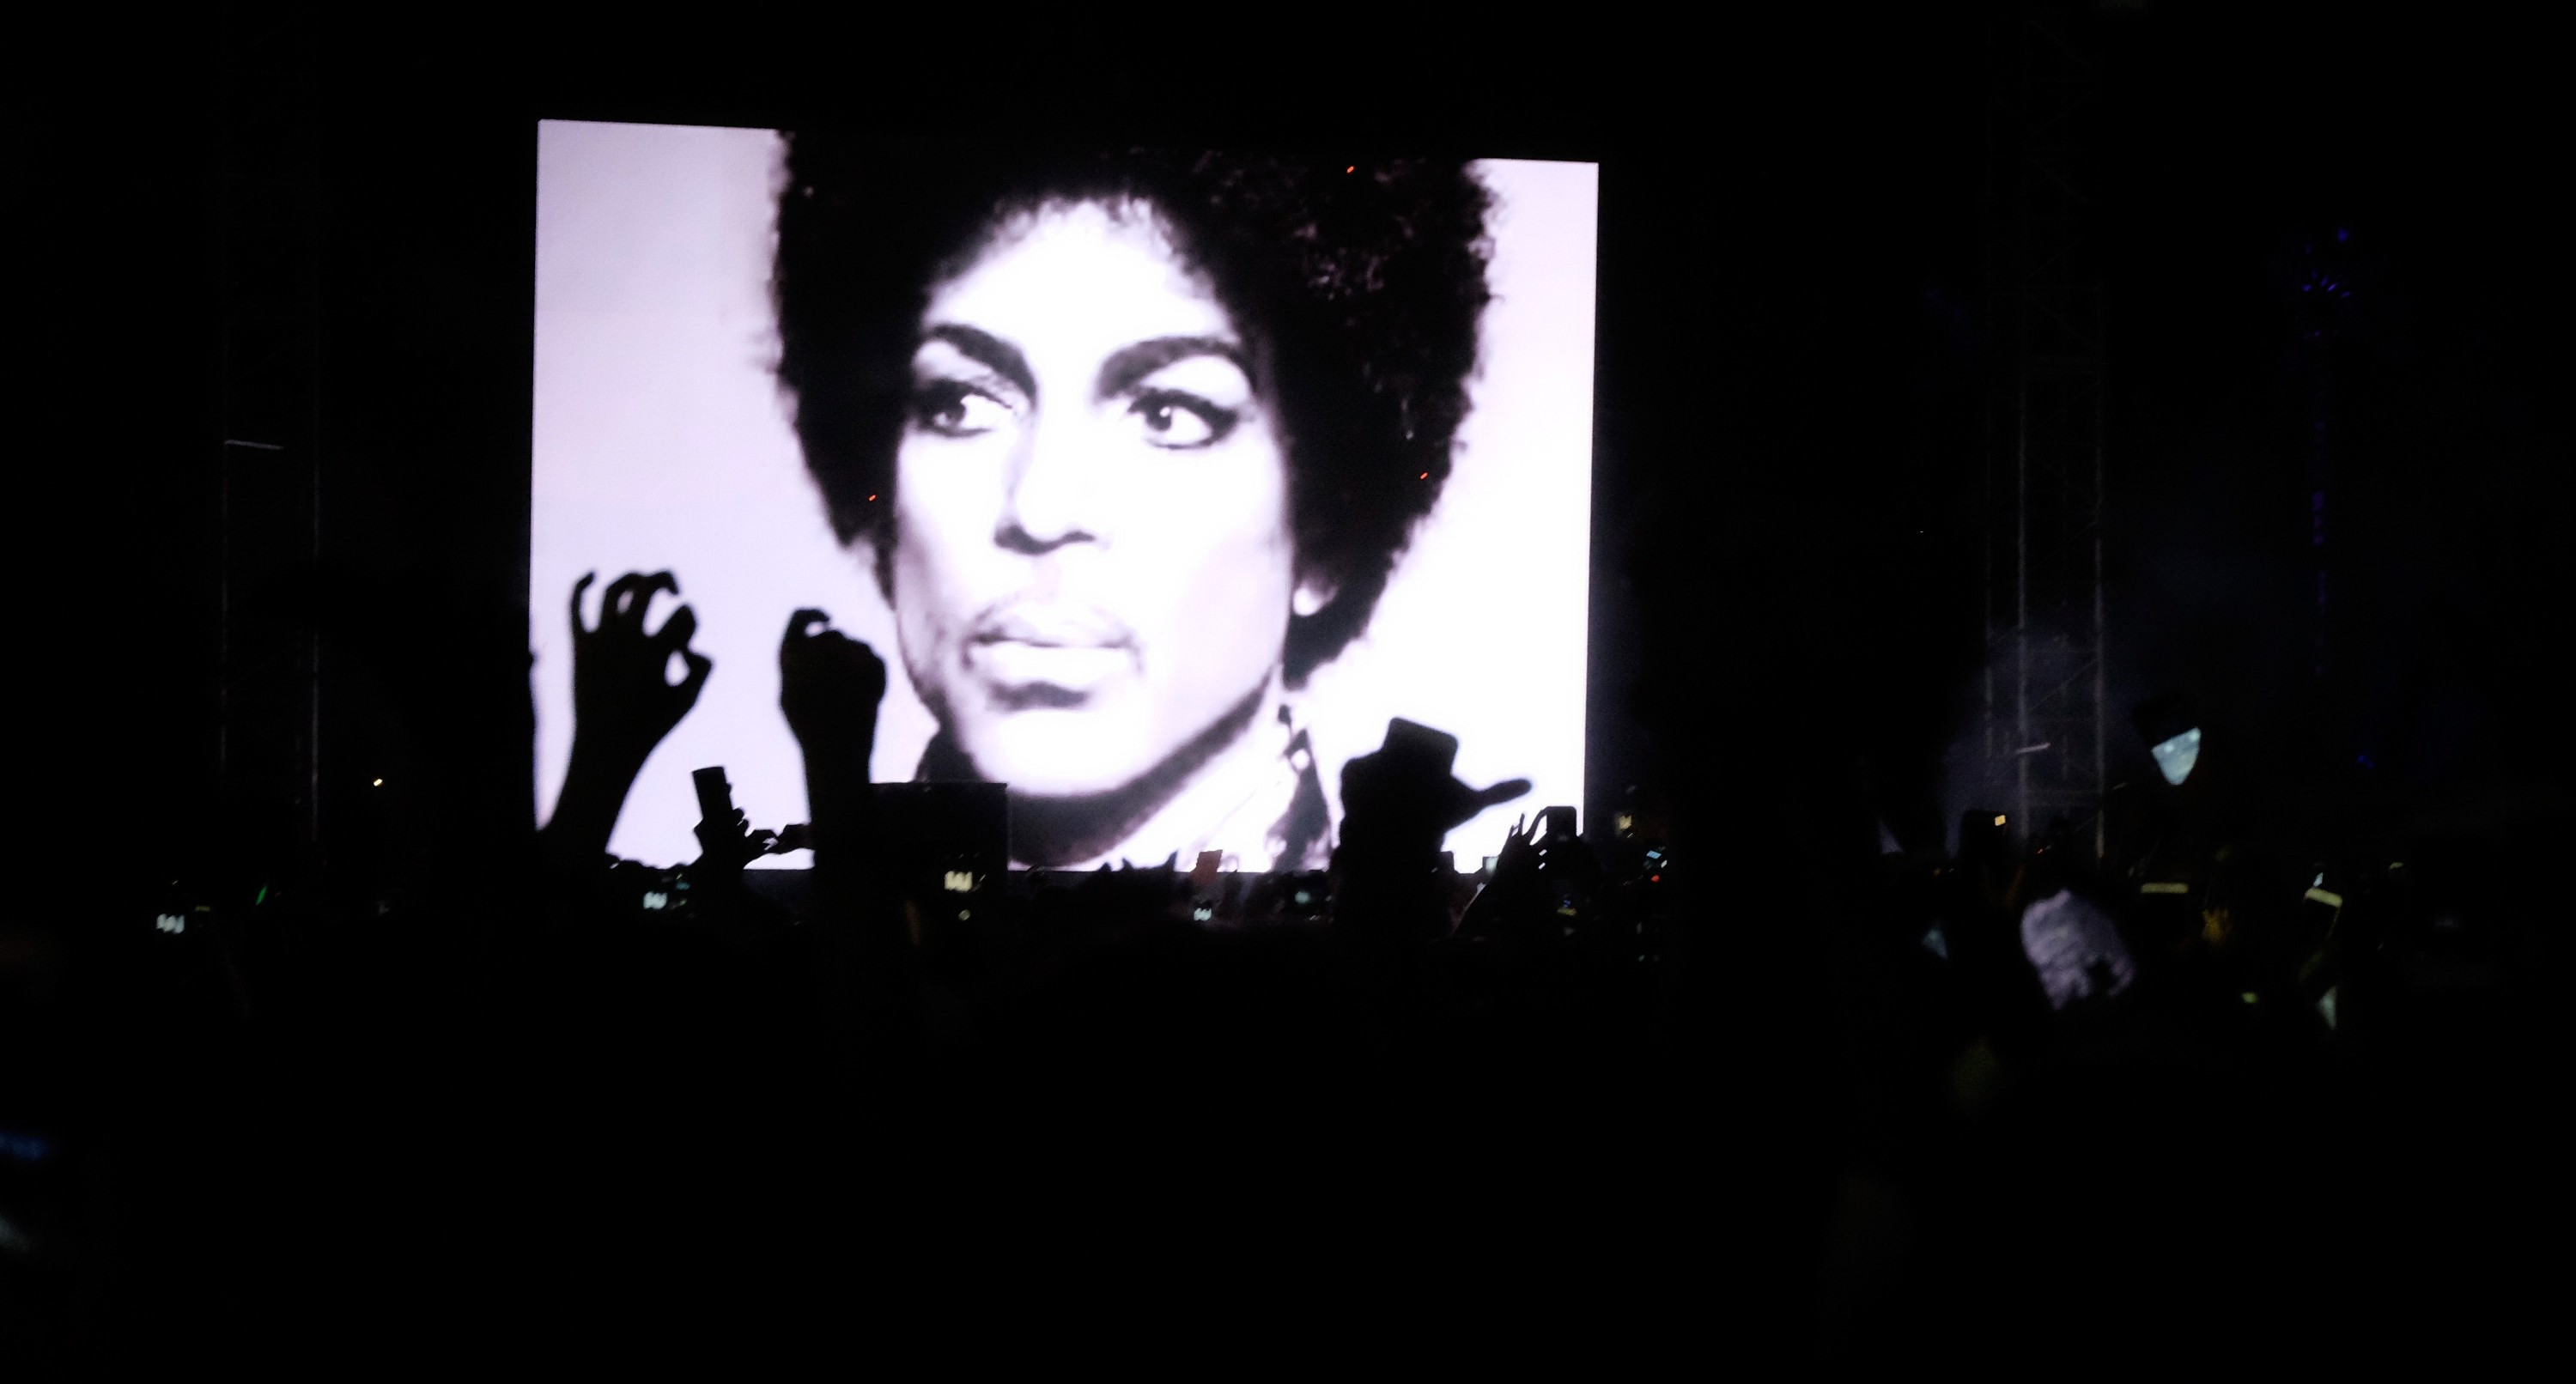 A Prince tribute was held during Jack U's performance at the 2016 Coachella Valley Music & Arts Festival Friday in Indio, Calif.